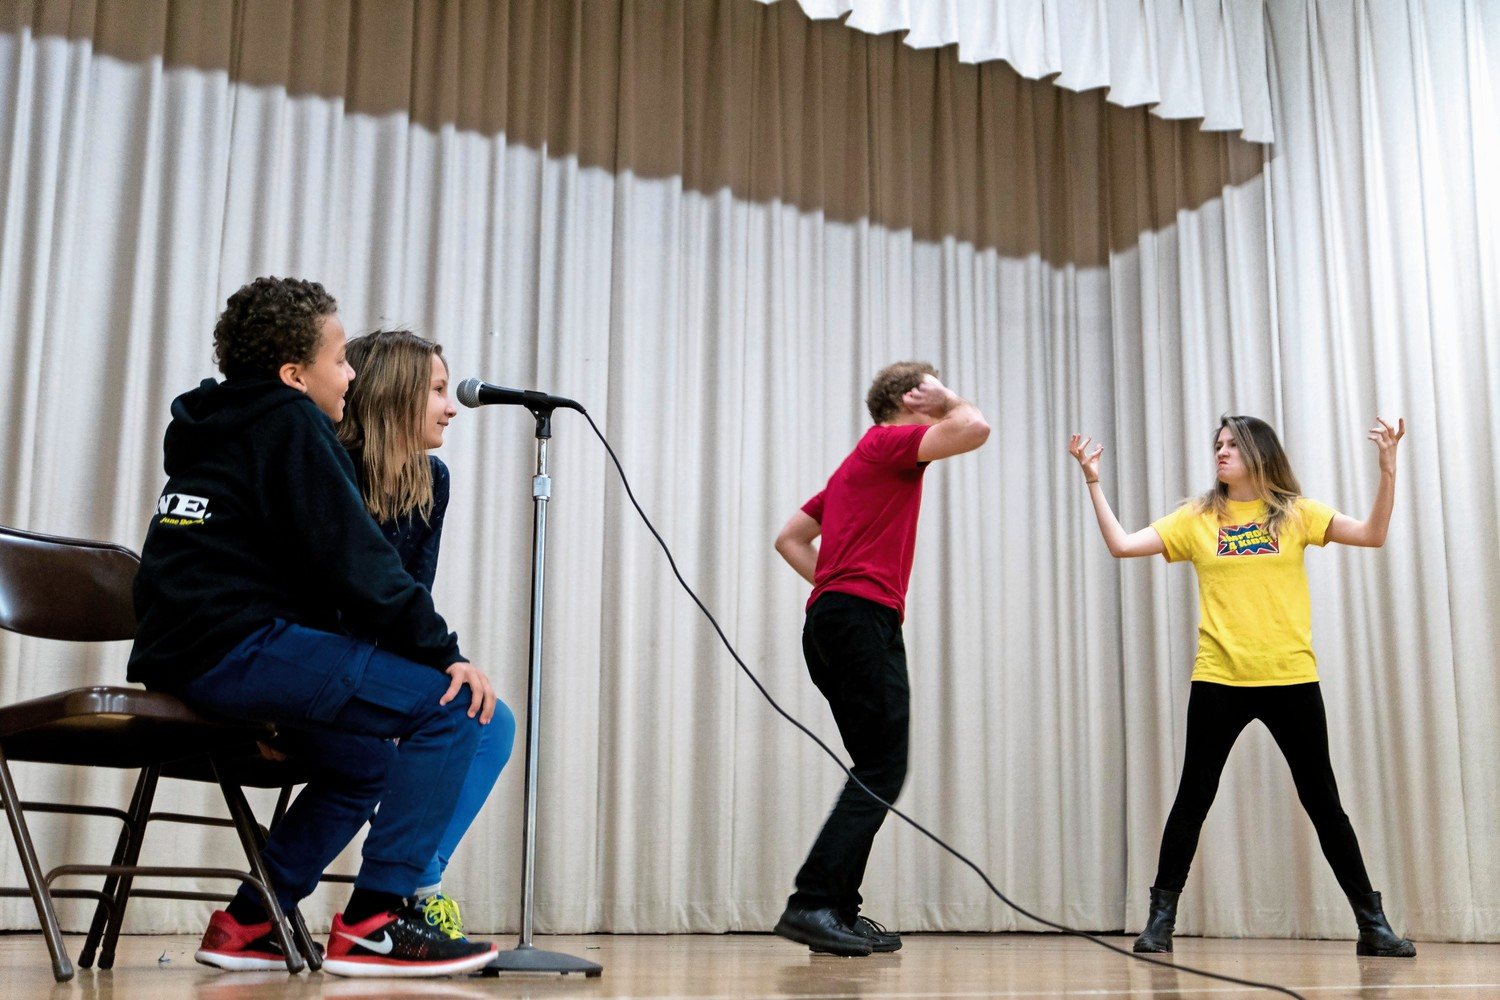 Jacob Chaitkin and Matea Milich provide sound effects for a sketch involving two members of the improv comedy troupe 'Eight is Never Enough' at P.S. 24.